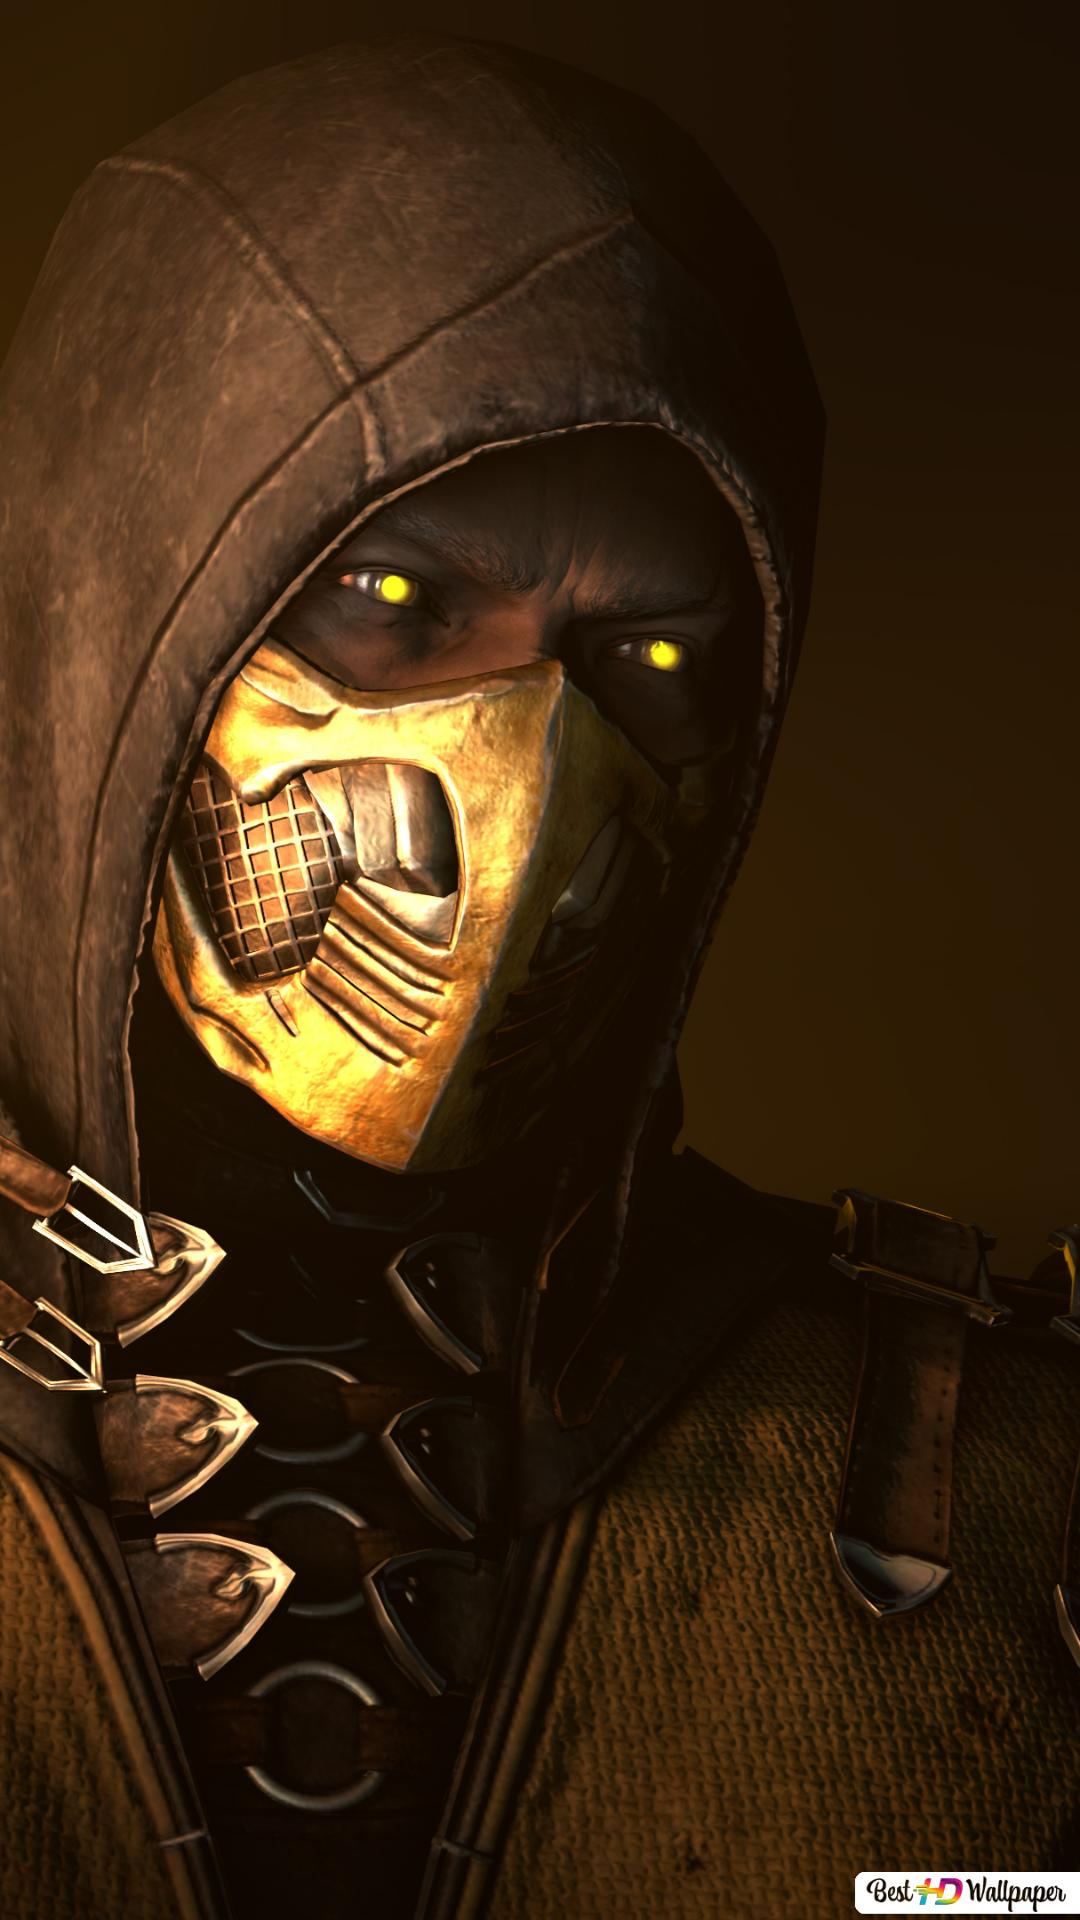 mortal kombat x scorpion fighter wallpaper 1080x1920 20588 165